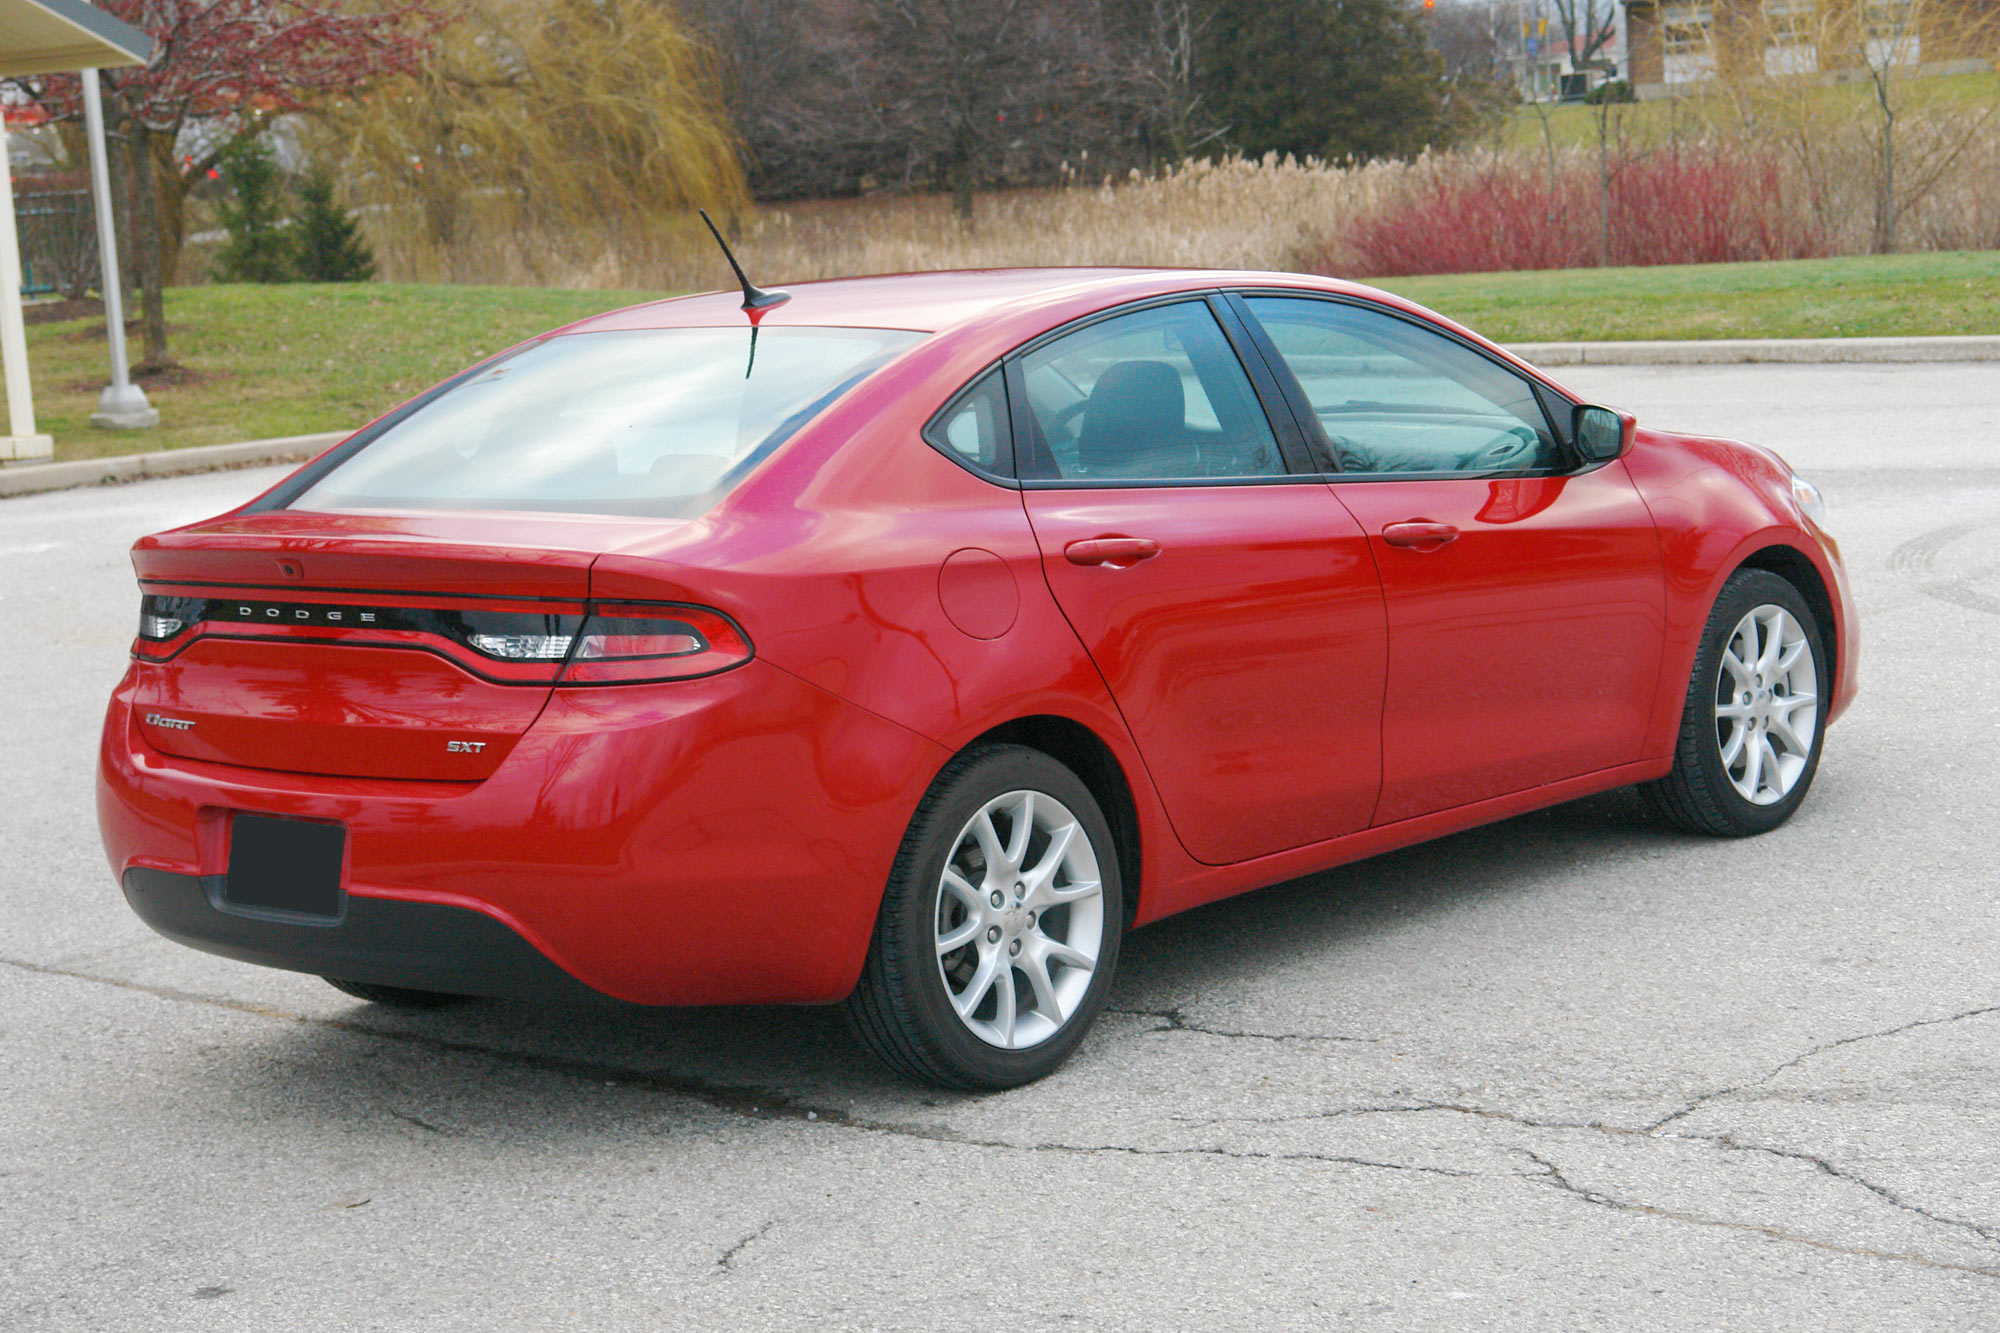 dodge htm dart for a sale madison or watertown lease wi buy near new